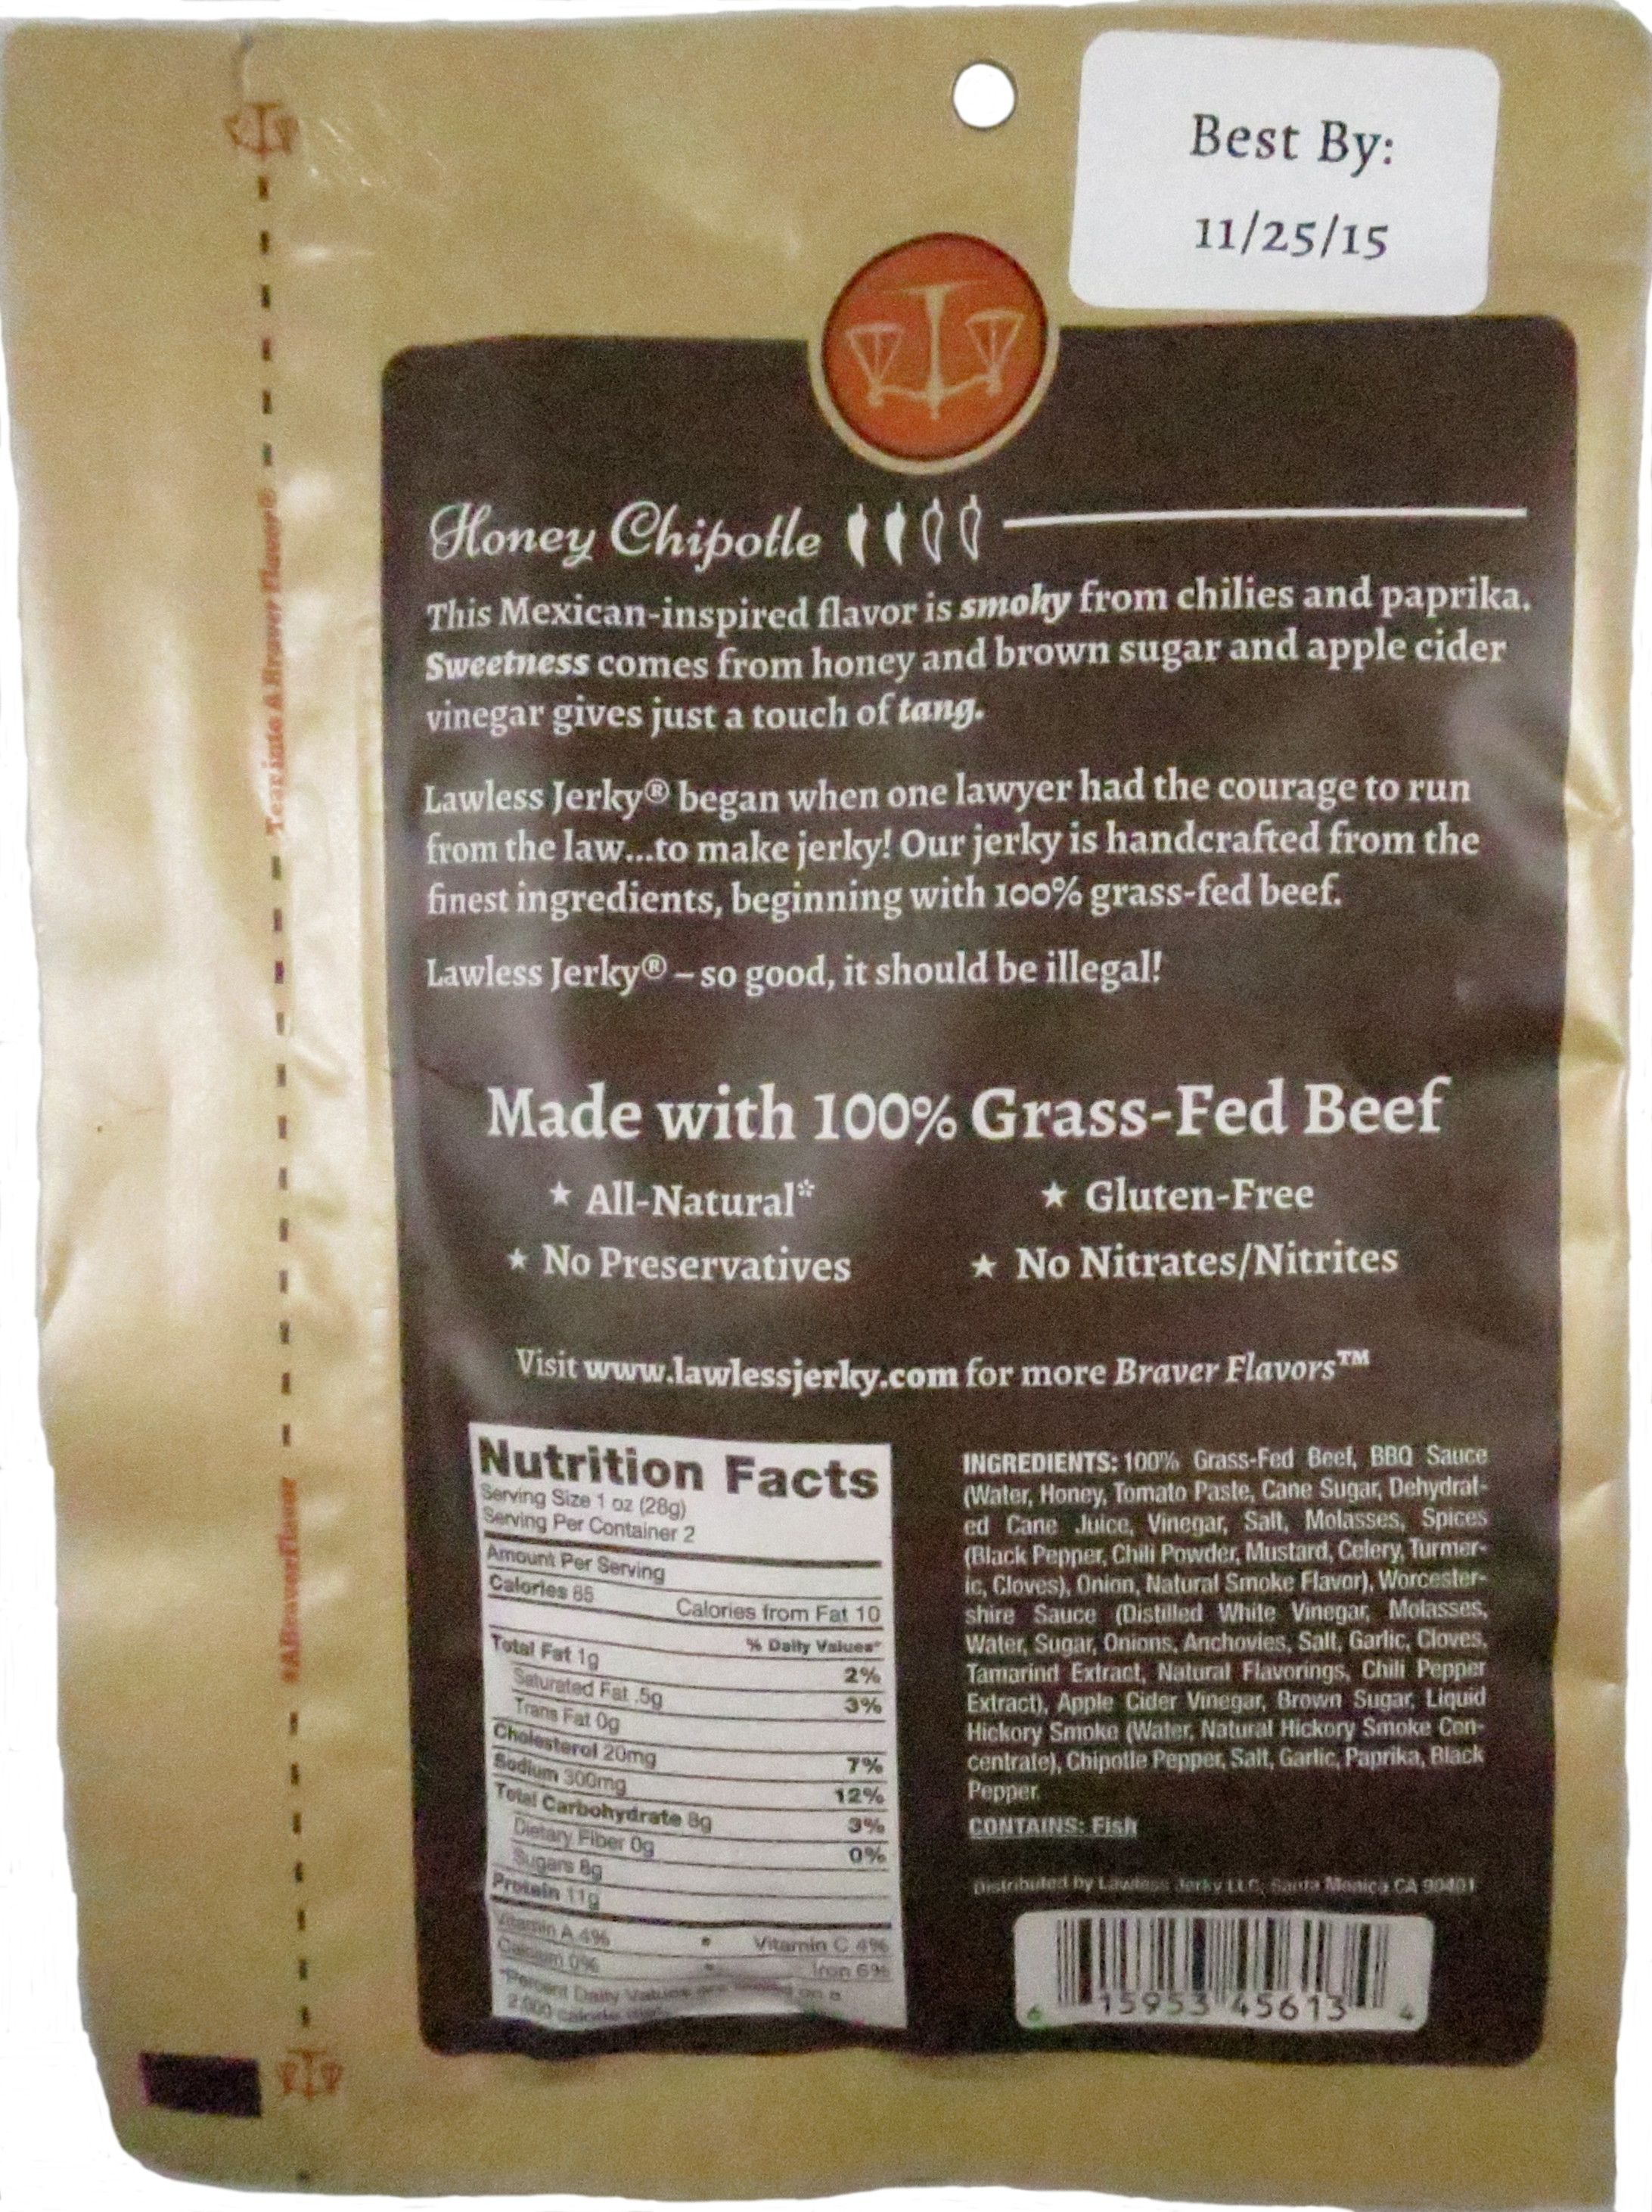 Discover How Lawless Jerky Honey Chipotle 100 Grass Fed Beef Jerky Fared In A Jerky Review Http Jerkyingre Grass Fed Beef Jerky Honey Chipotle Beef Jerky